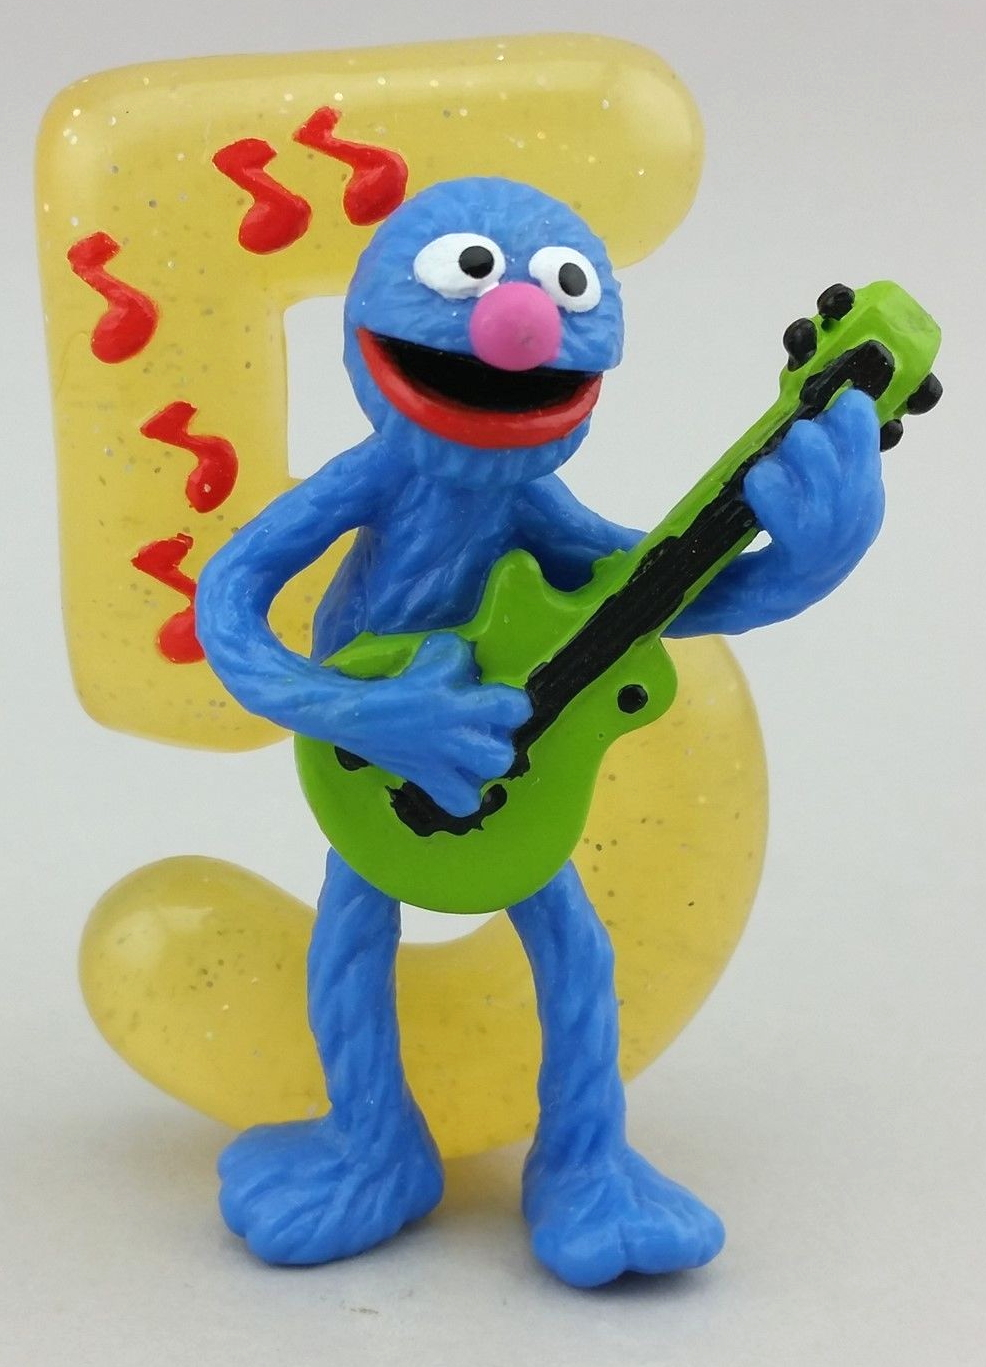 File:ApplauseGrover5Guitar.jpg